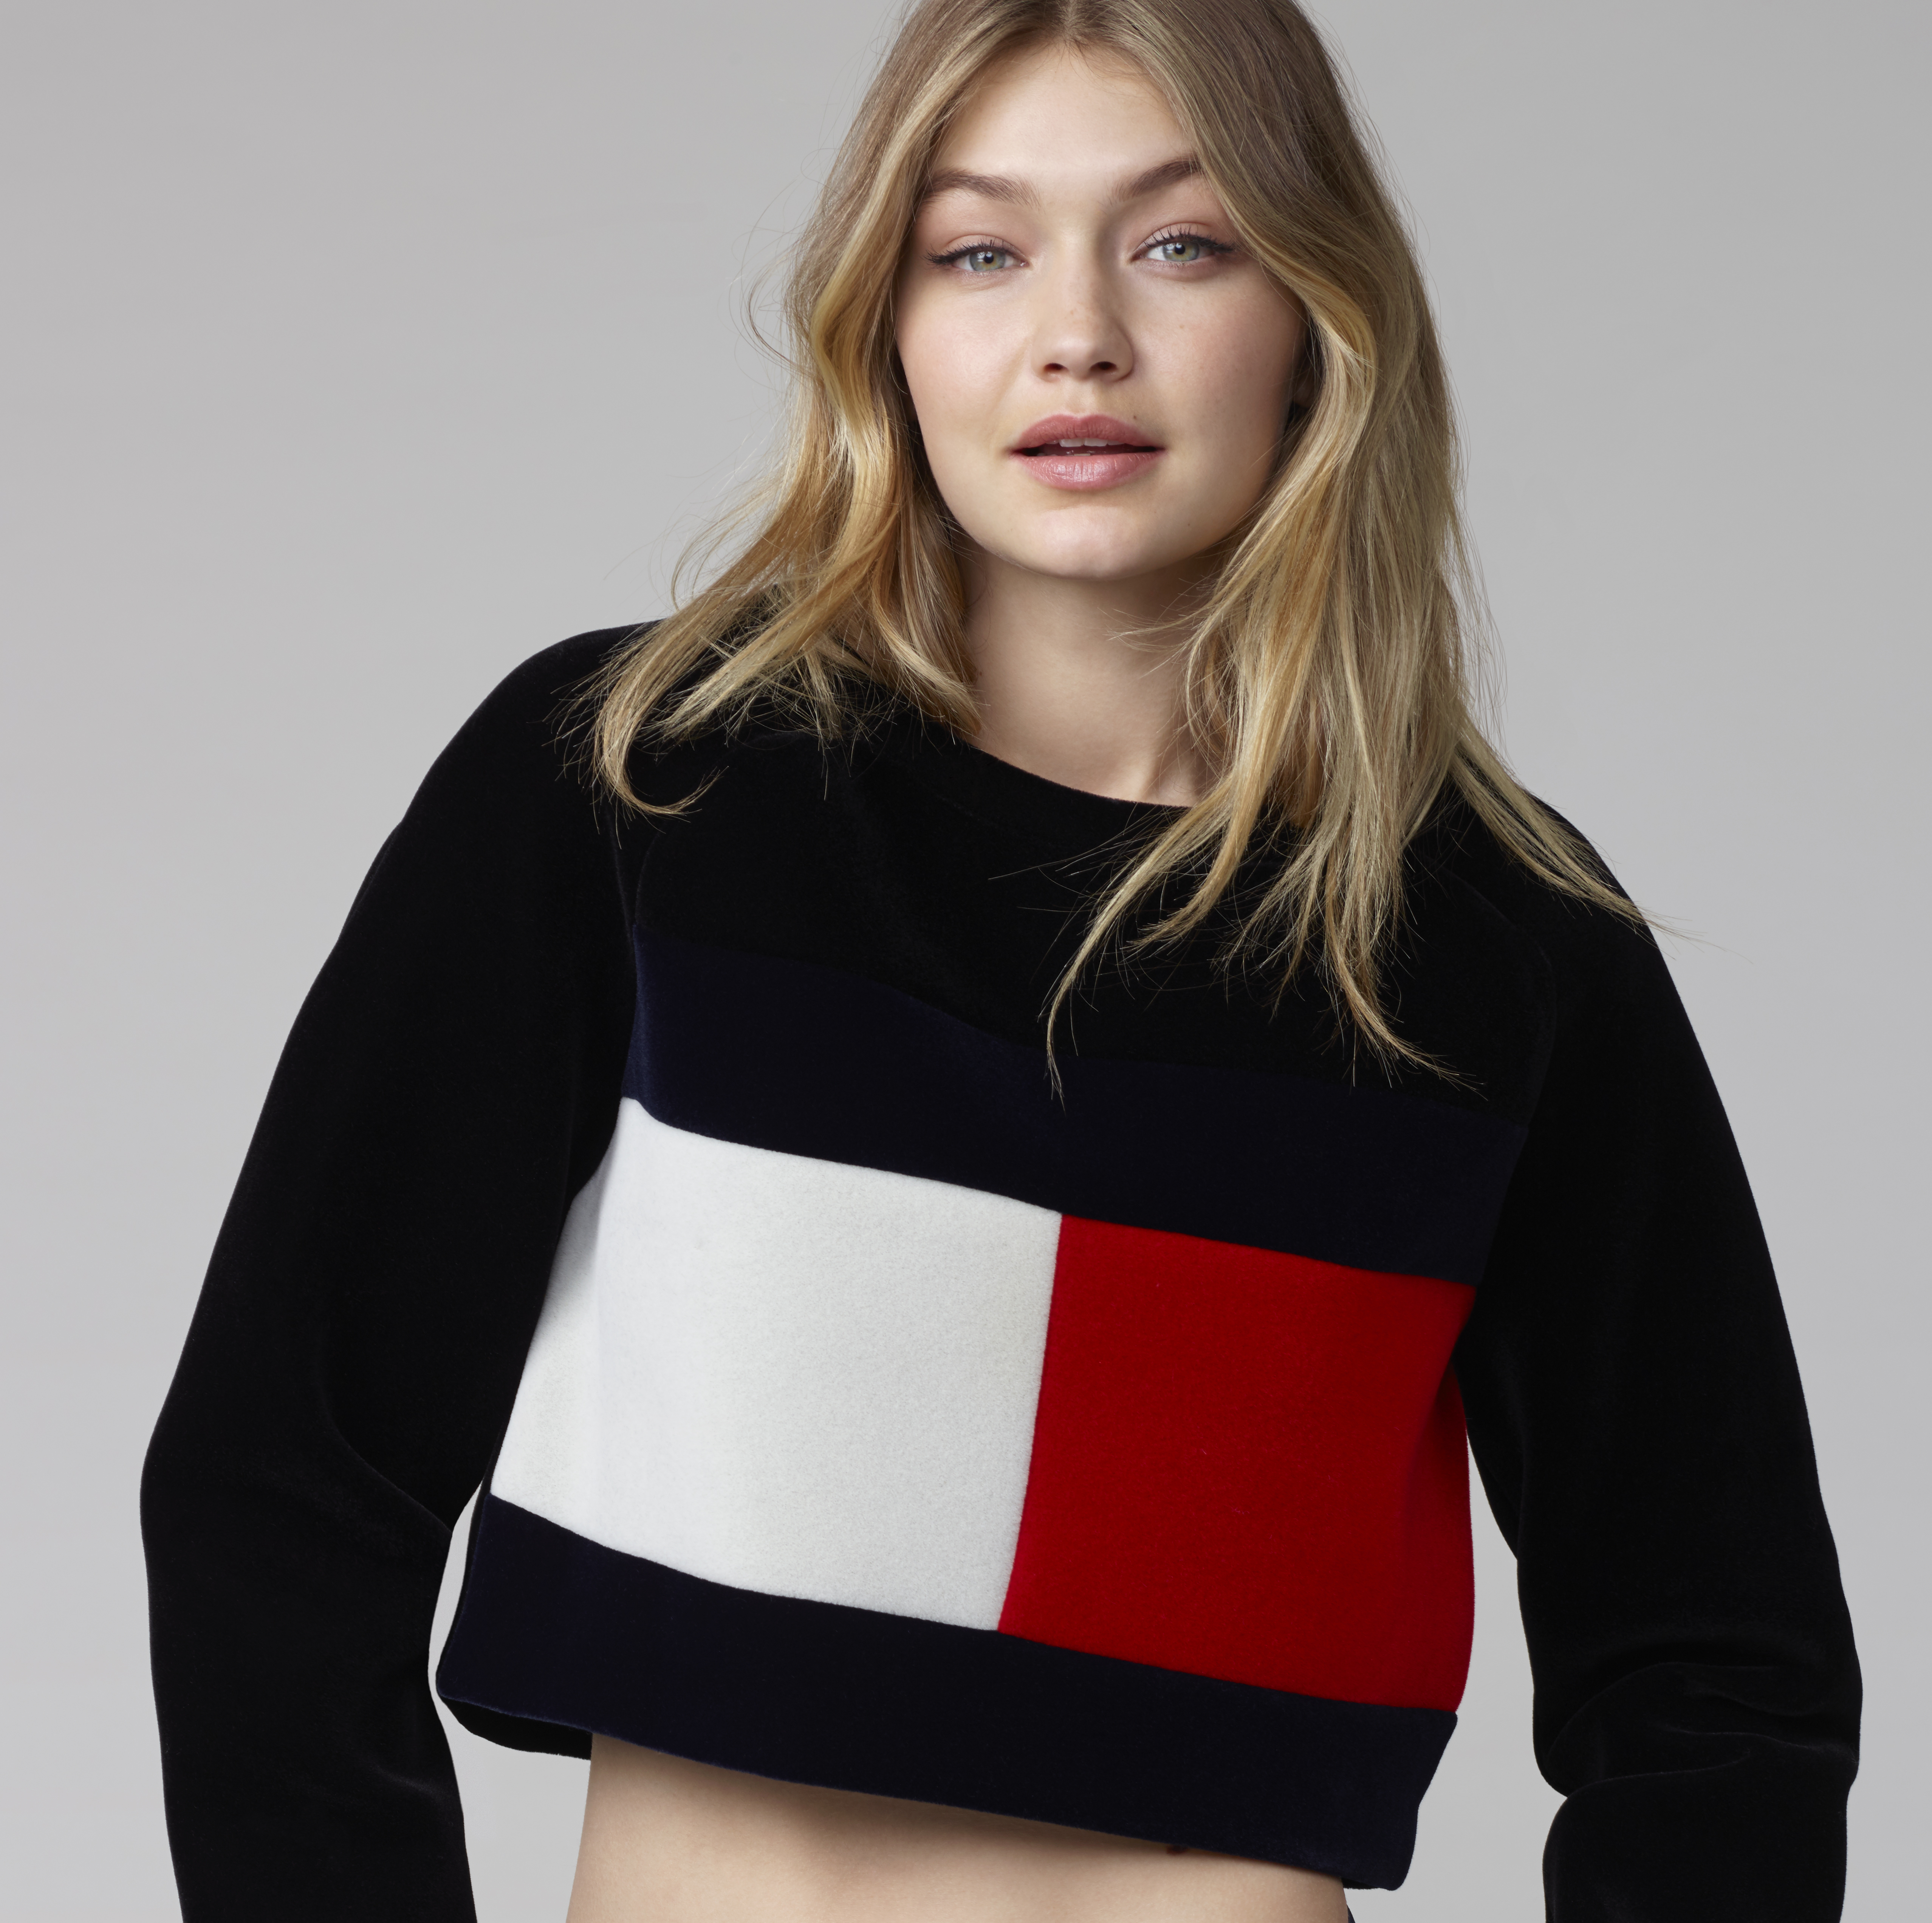 GIGI HADID NAMED BRAND AMBASSADOR OF TOMMY HILFIGER